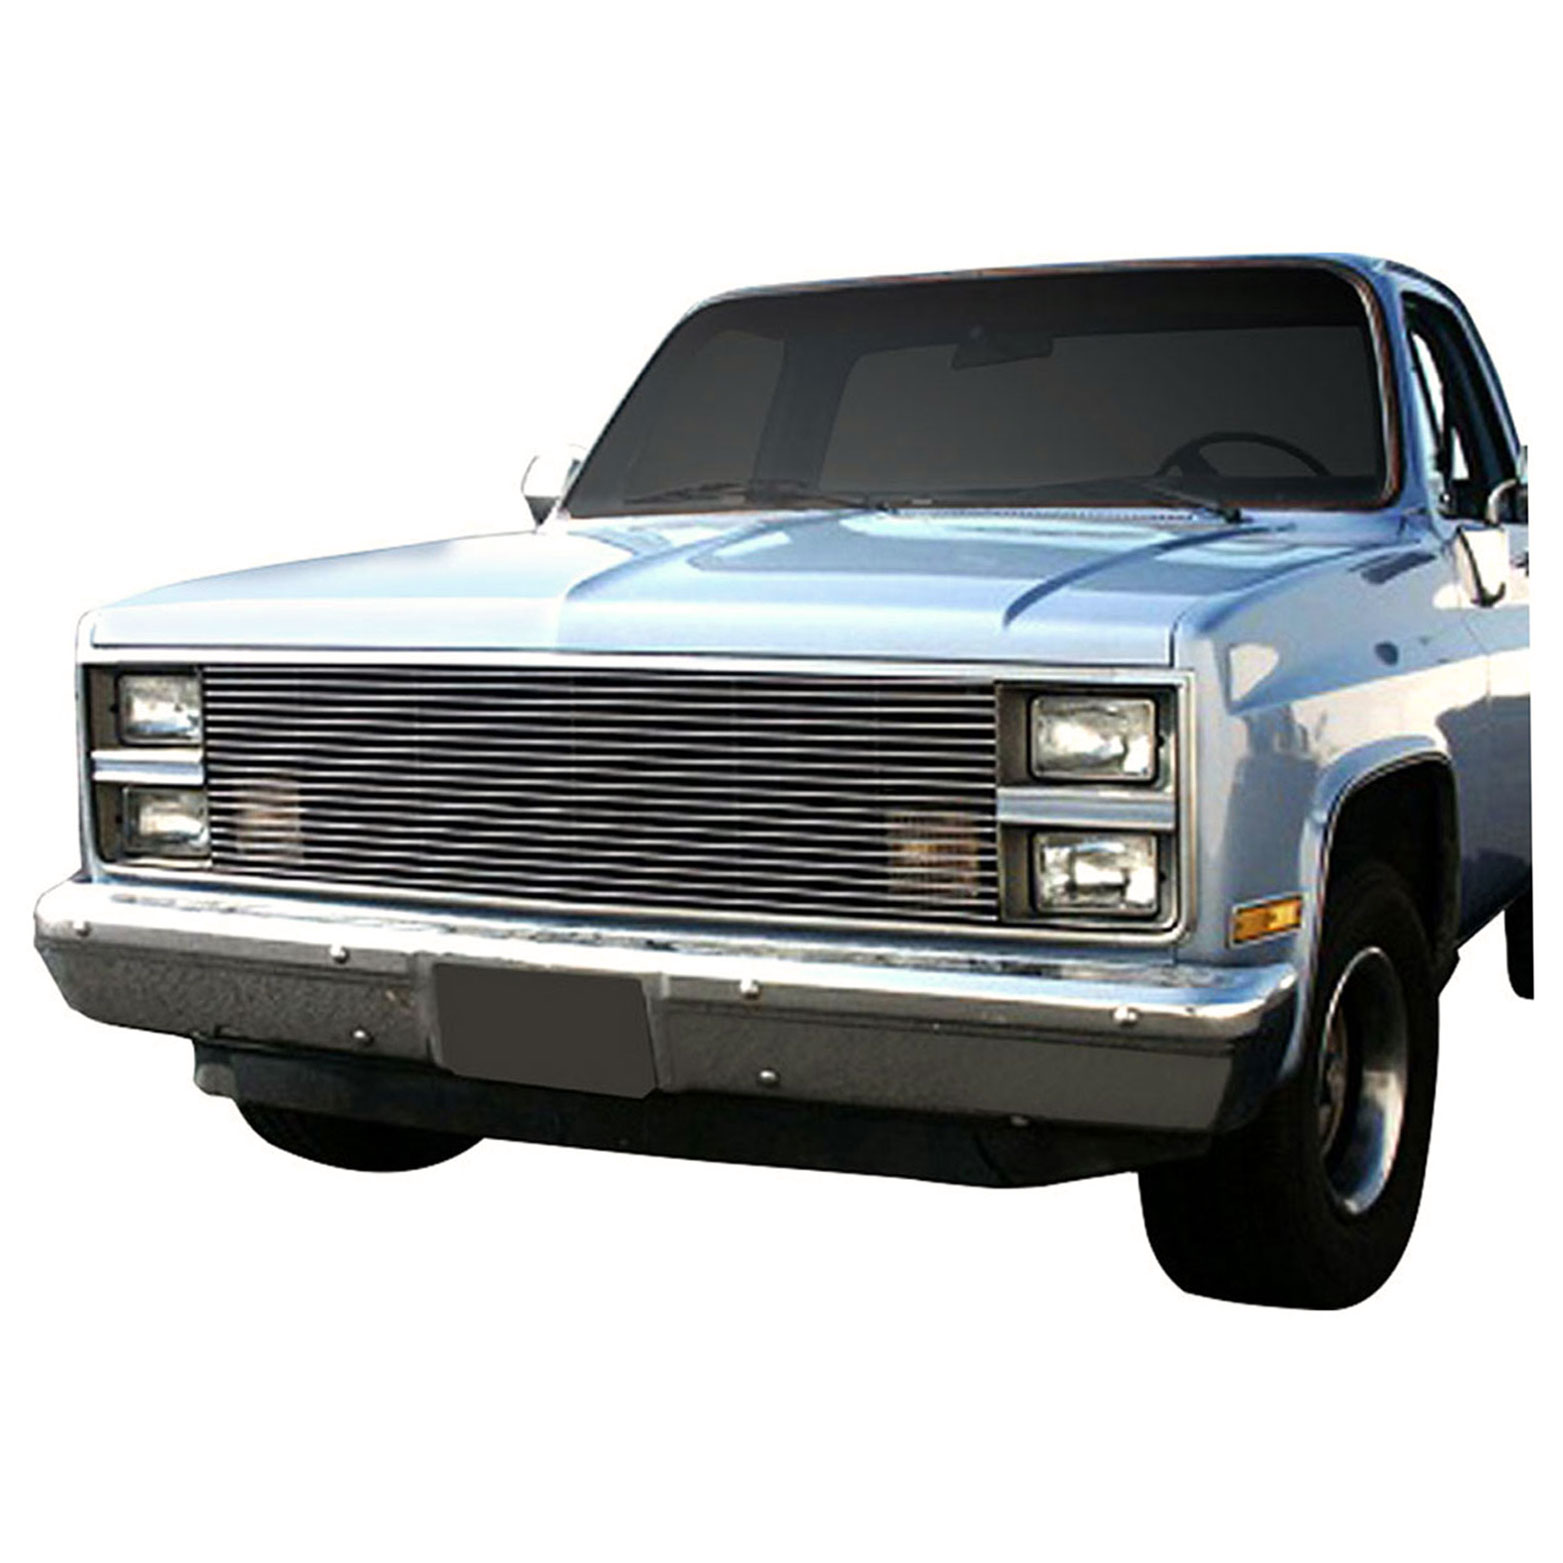 Replacement Billet Grille For 1981 1987 Chevy C10 Chrome Premium Fx Ebay